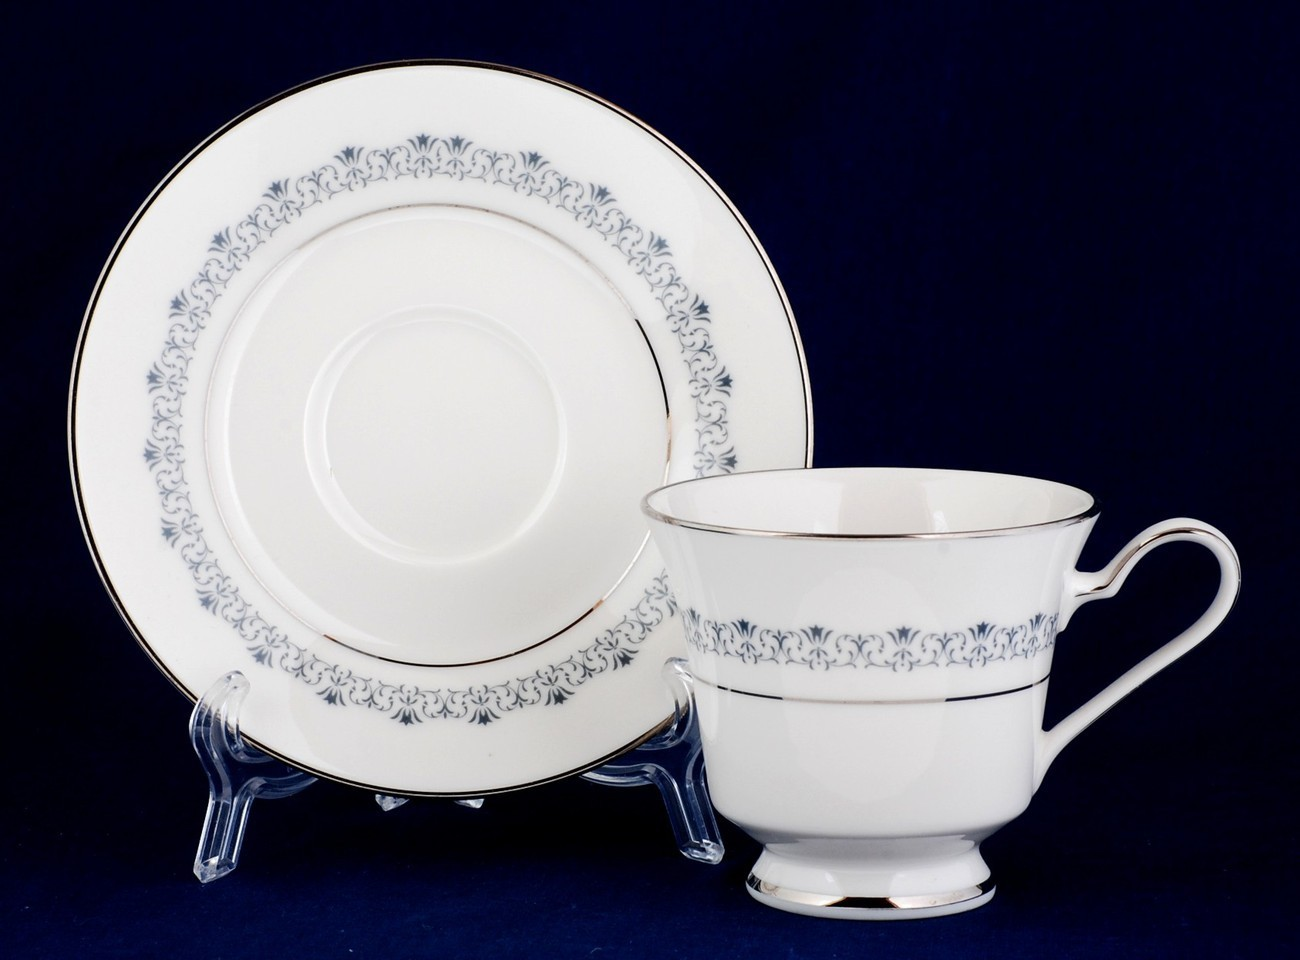 Noritake Geri Cup and Saucer 7026 Ivory China New Stock